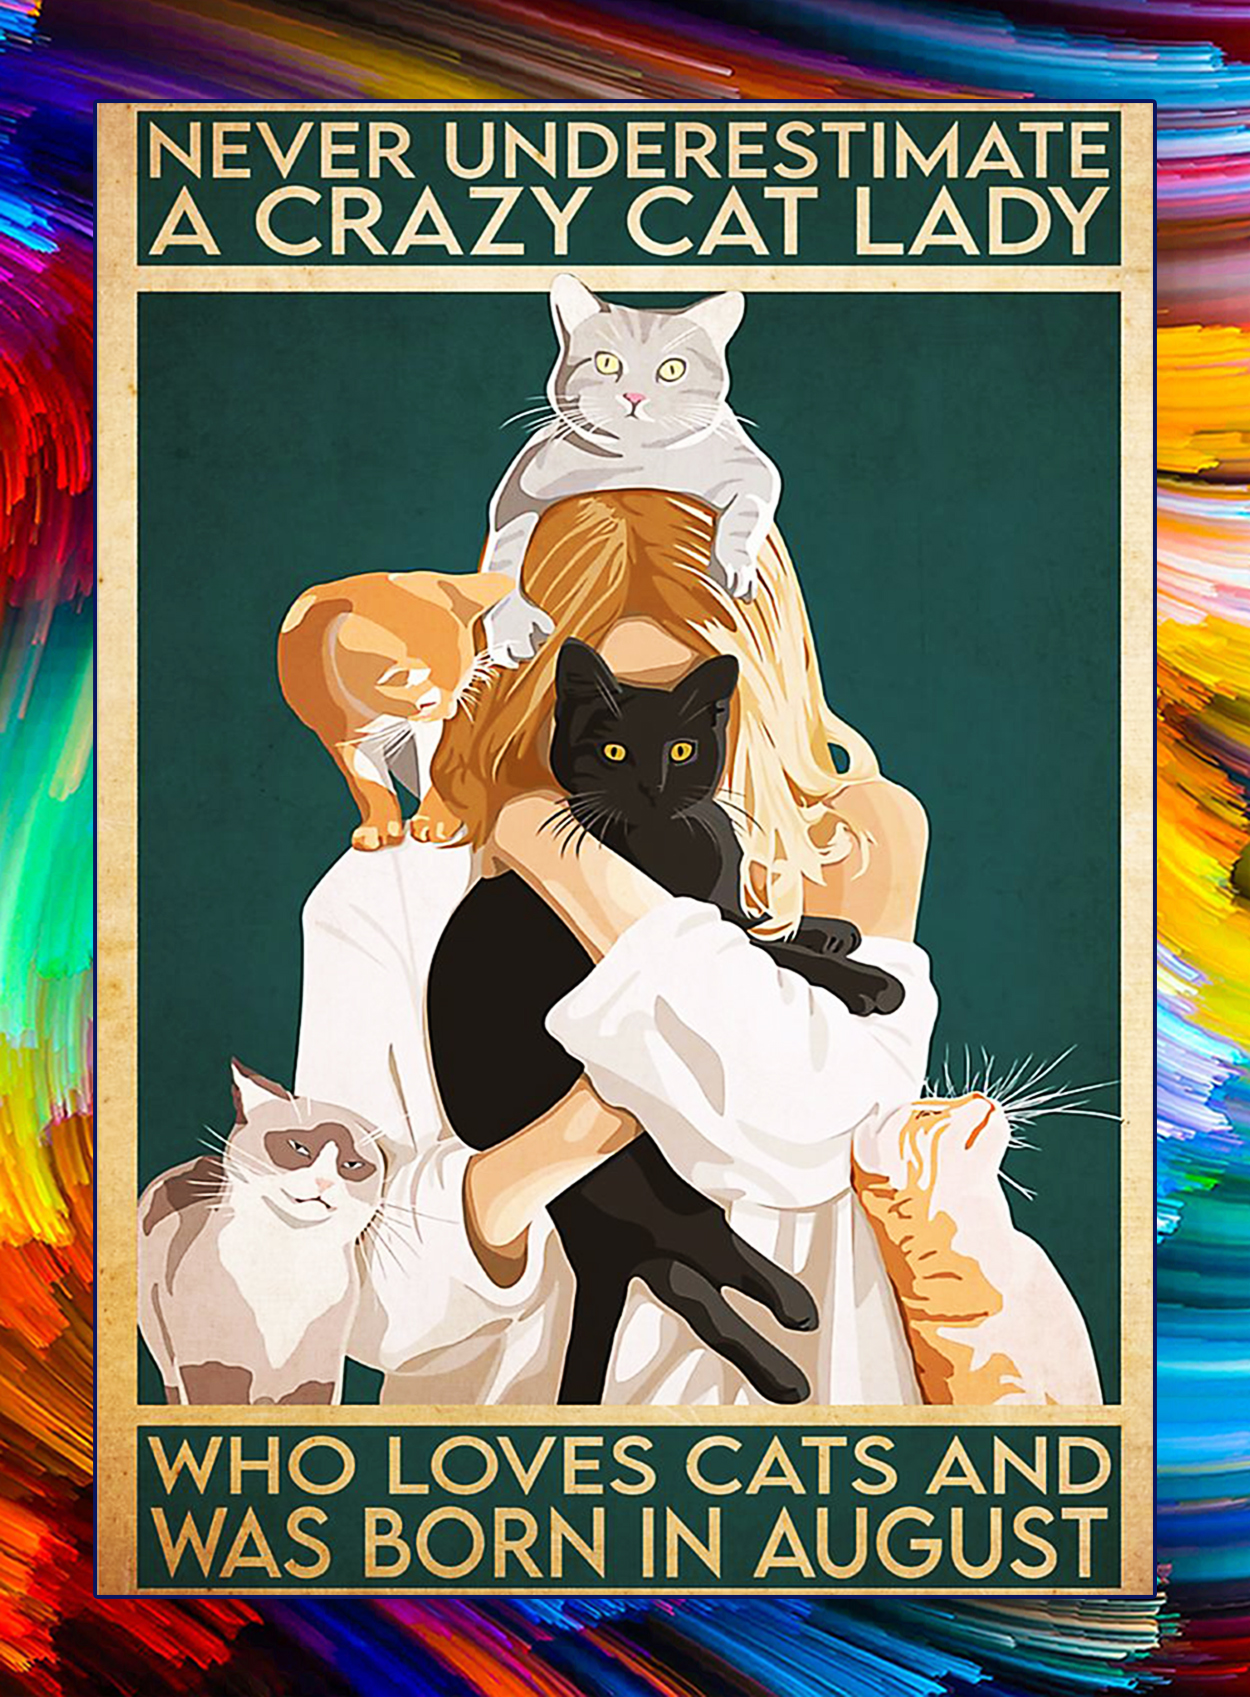 Never underestimate a crazy cat lady who loves cats and was born in august poster - A3